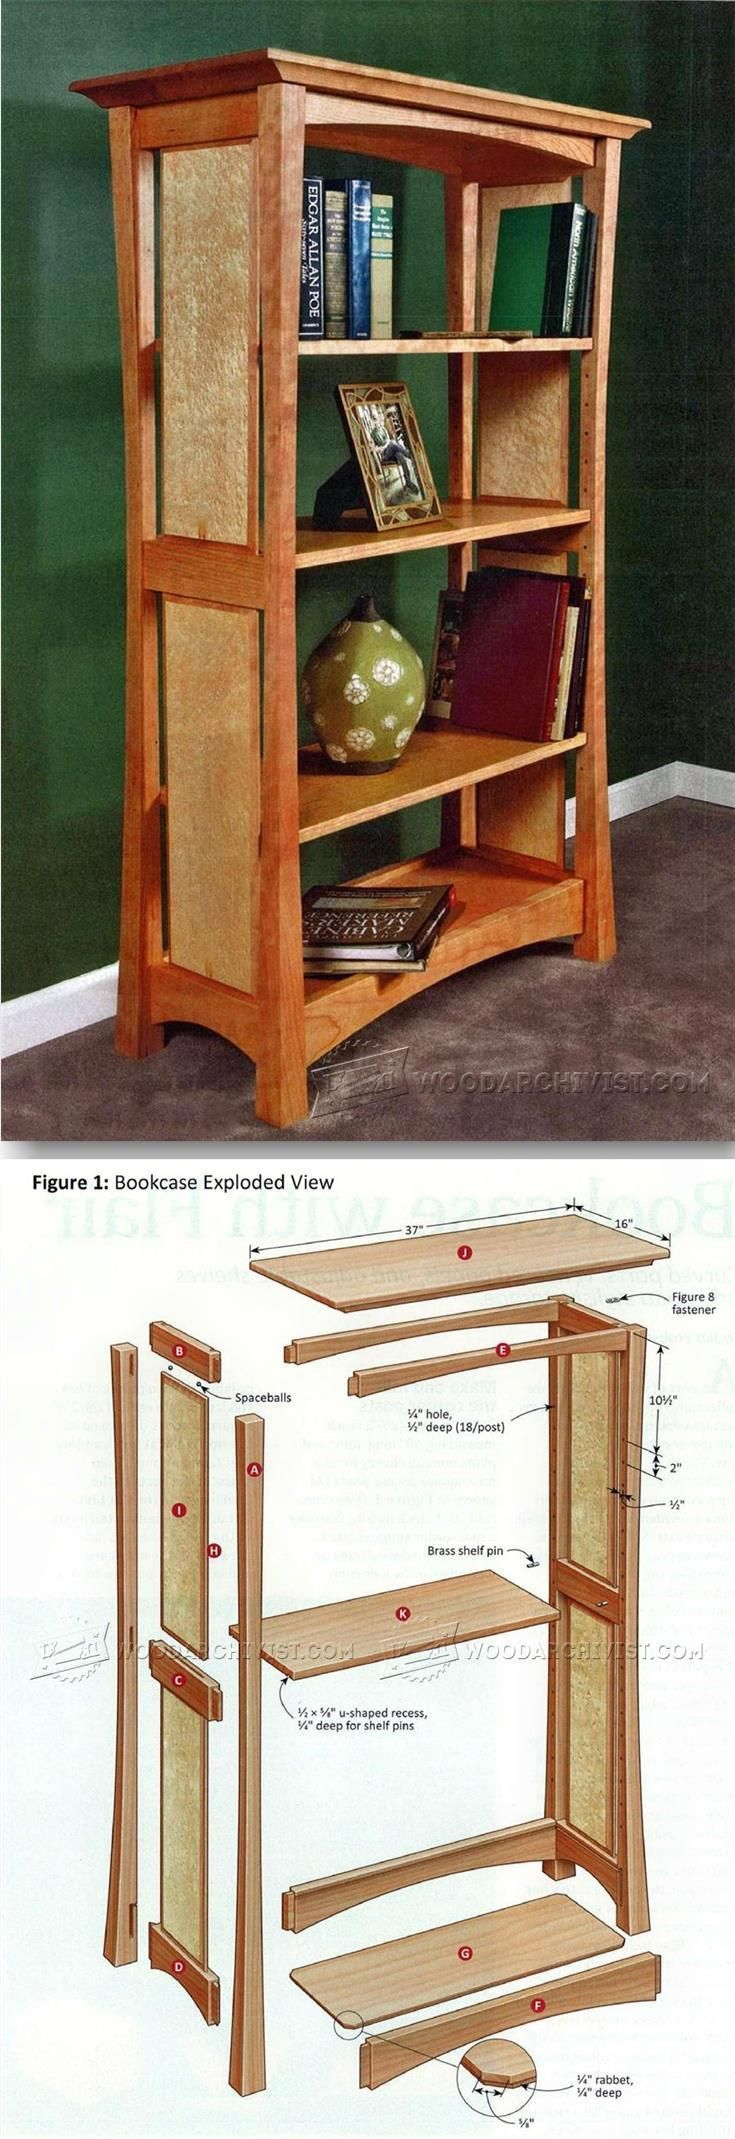 Pin by morningchores on woodworking woodworking - Woodworking plans bedroom furniture ...